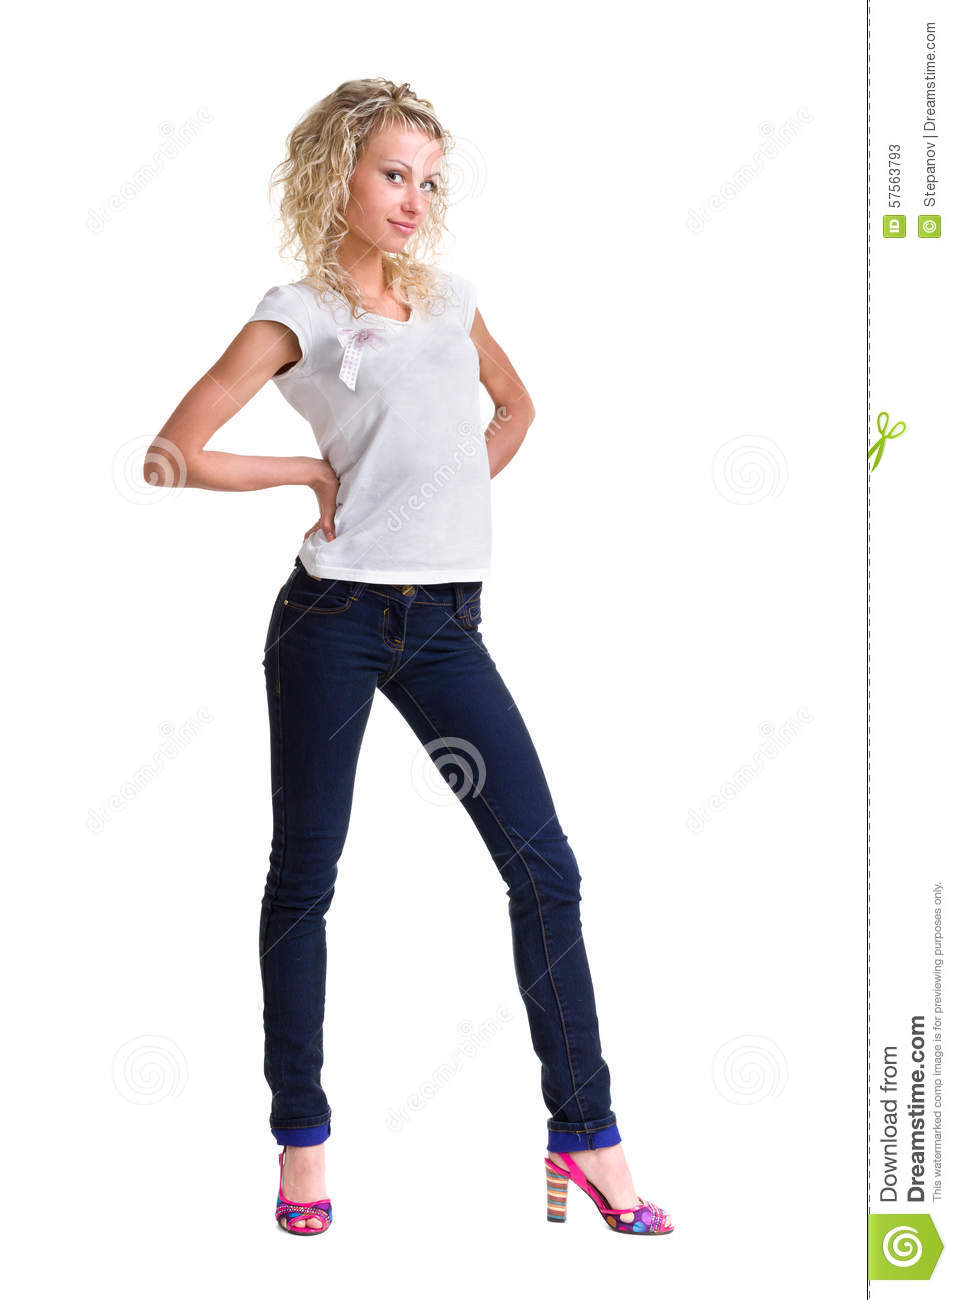 Young beautiful and cool woman full body | Premium PSD File